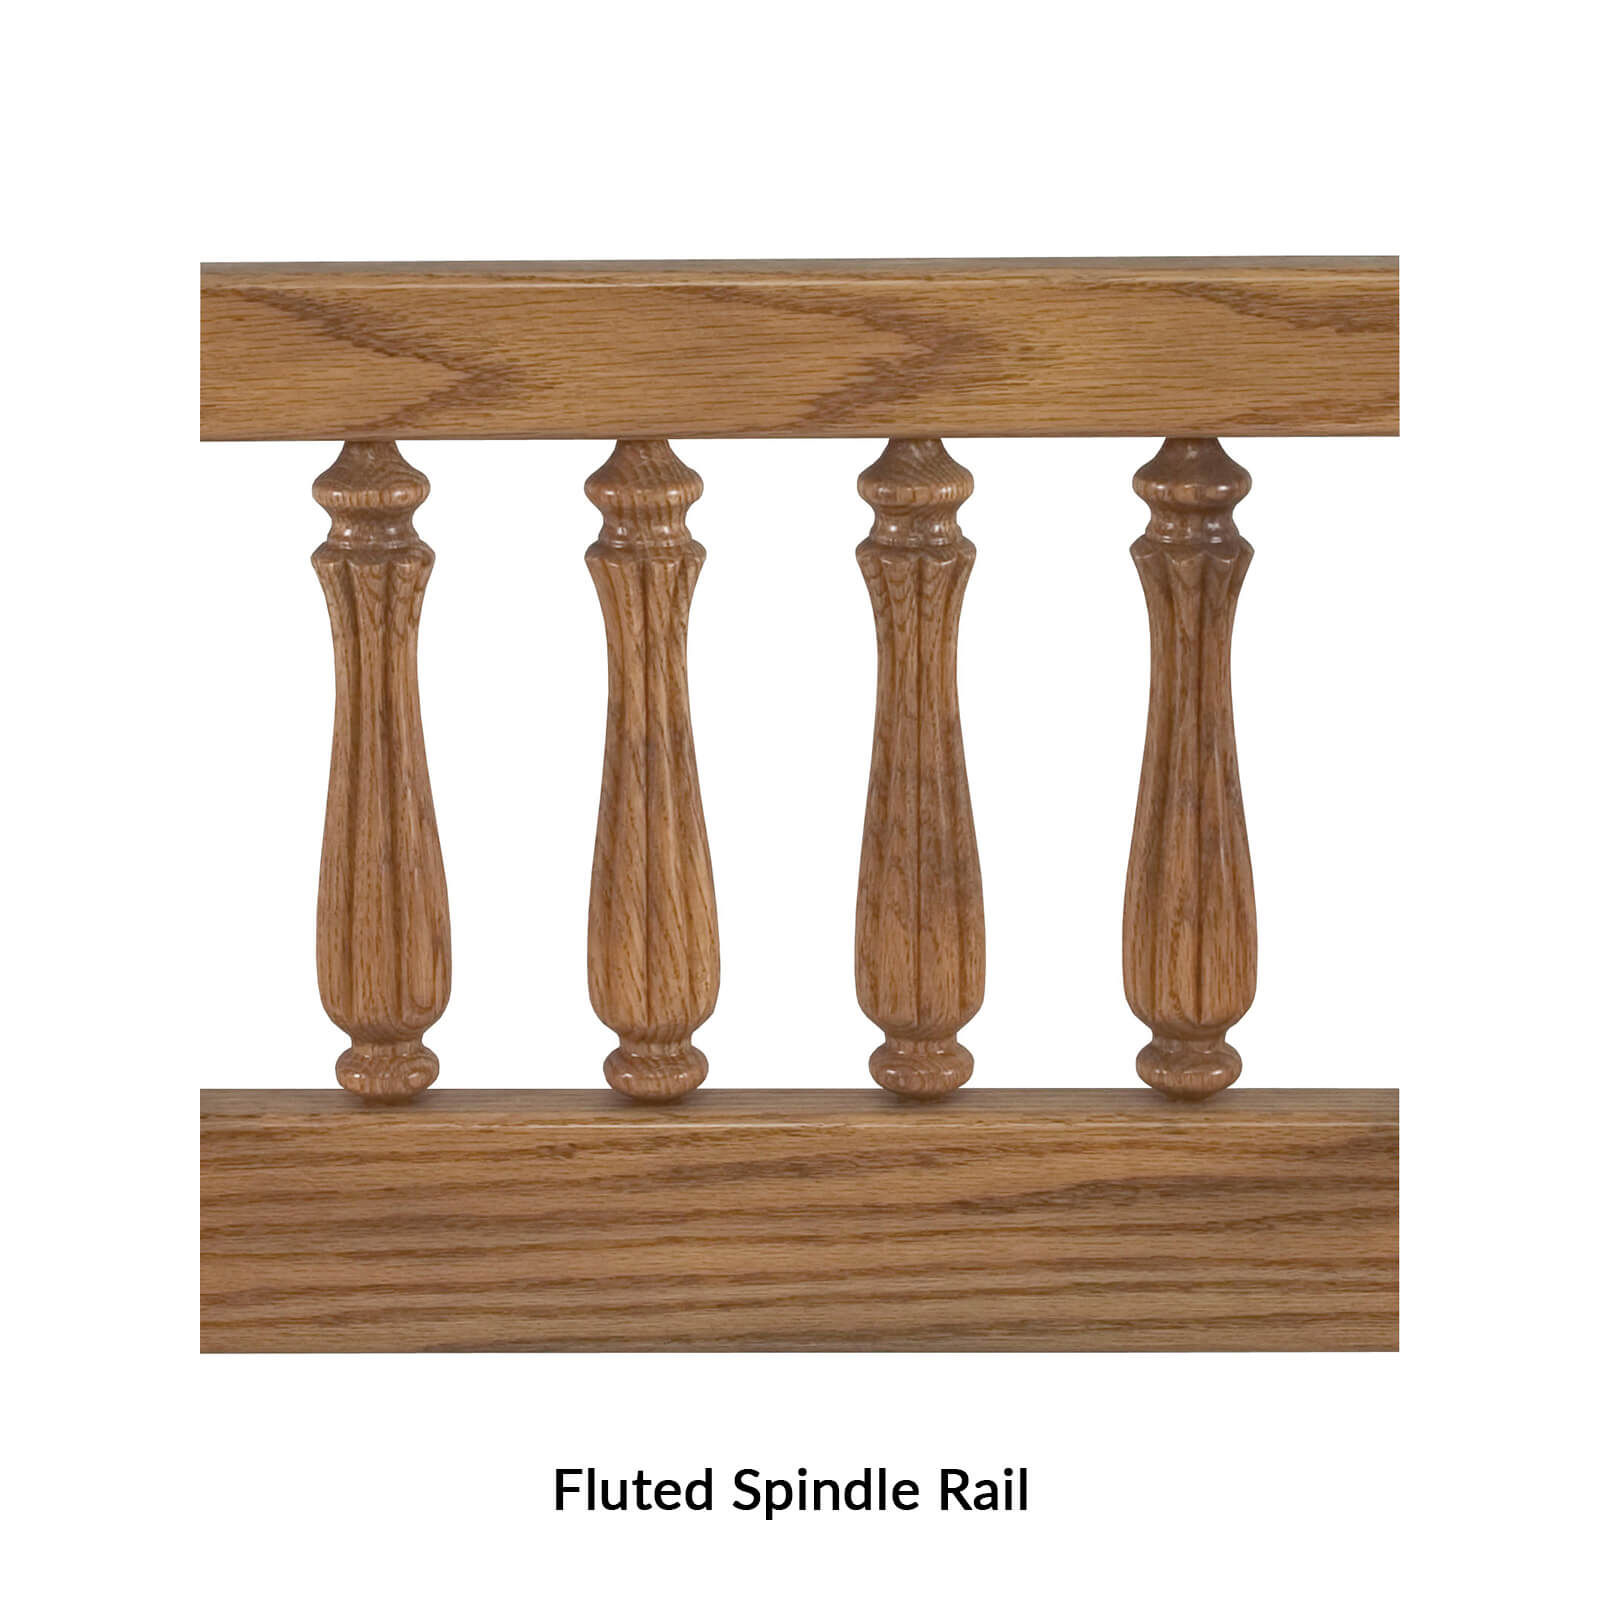 7.3-fluted-spindle-rail.jpg